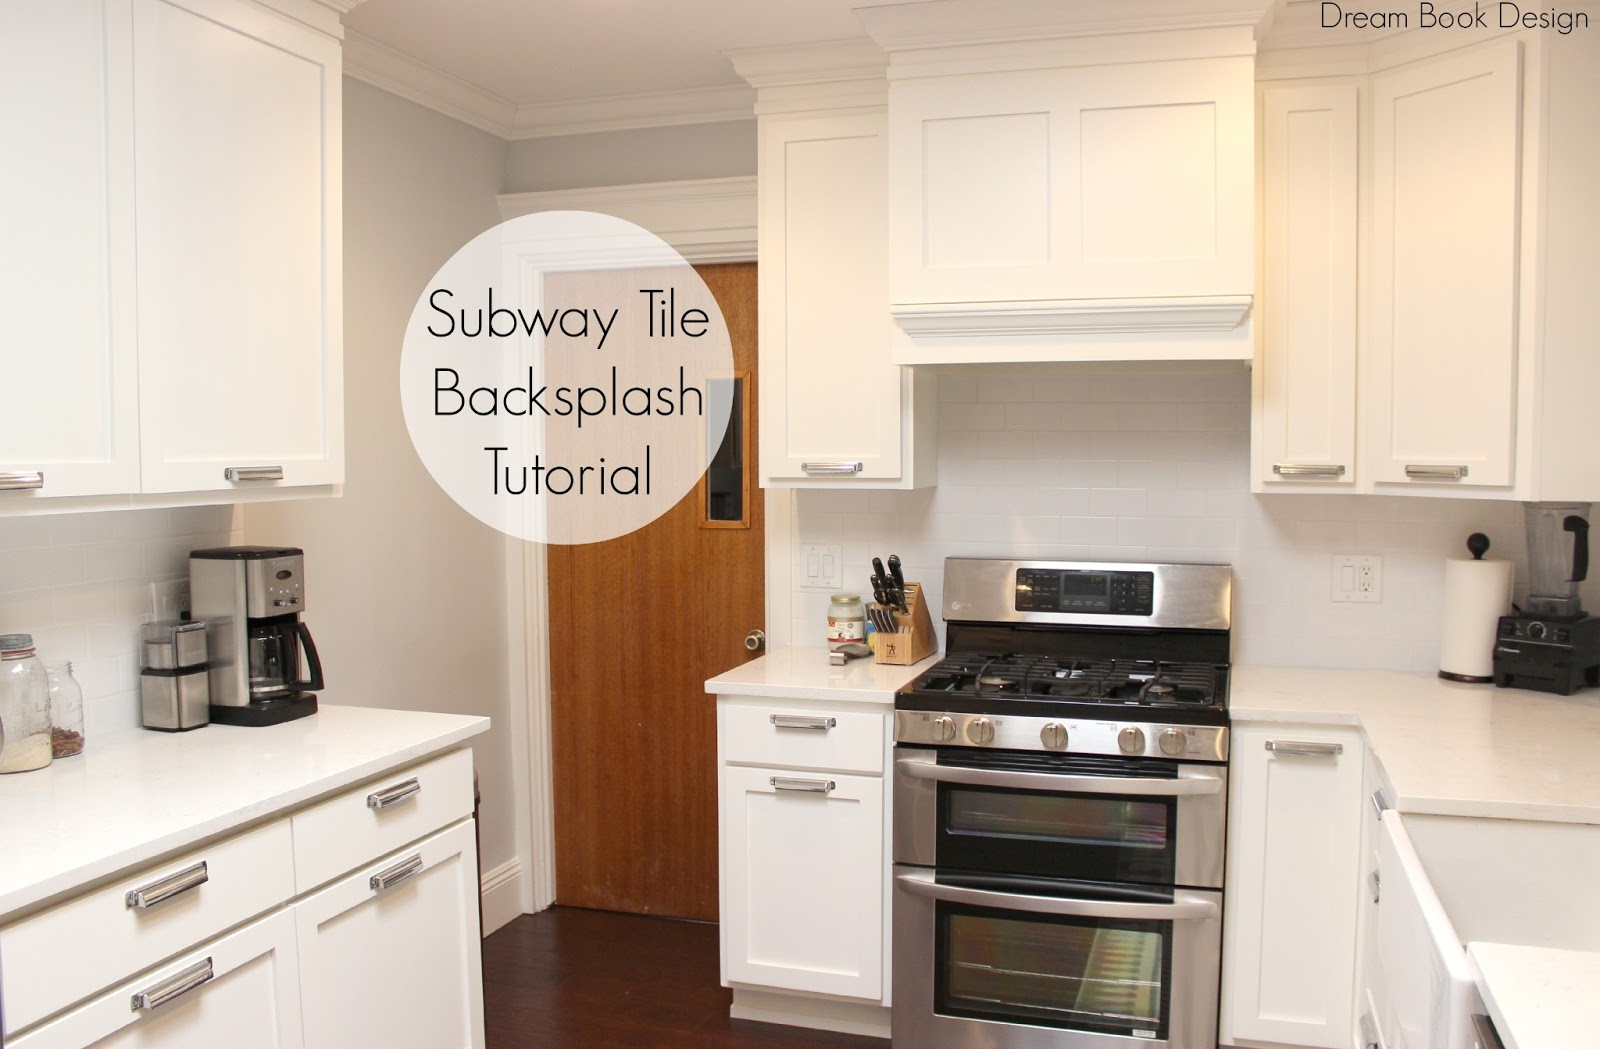 - Easy DIY Subway Tile Backsplash Tutorial - Dream Book Design